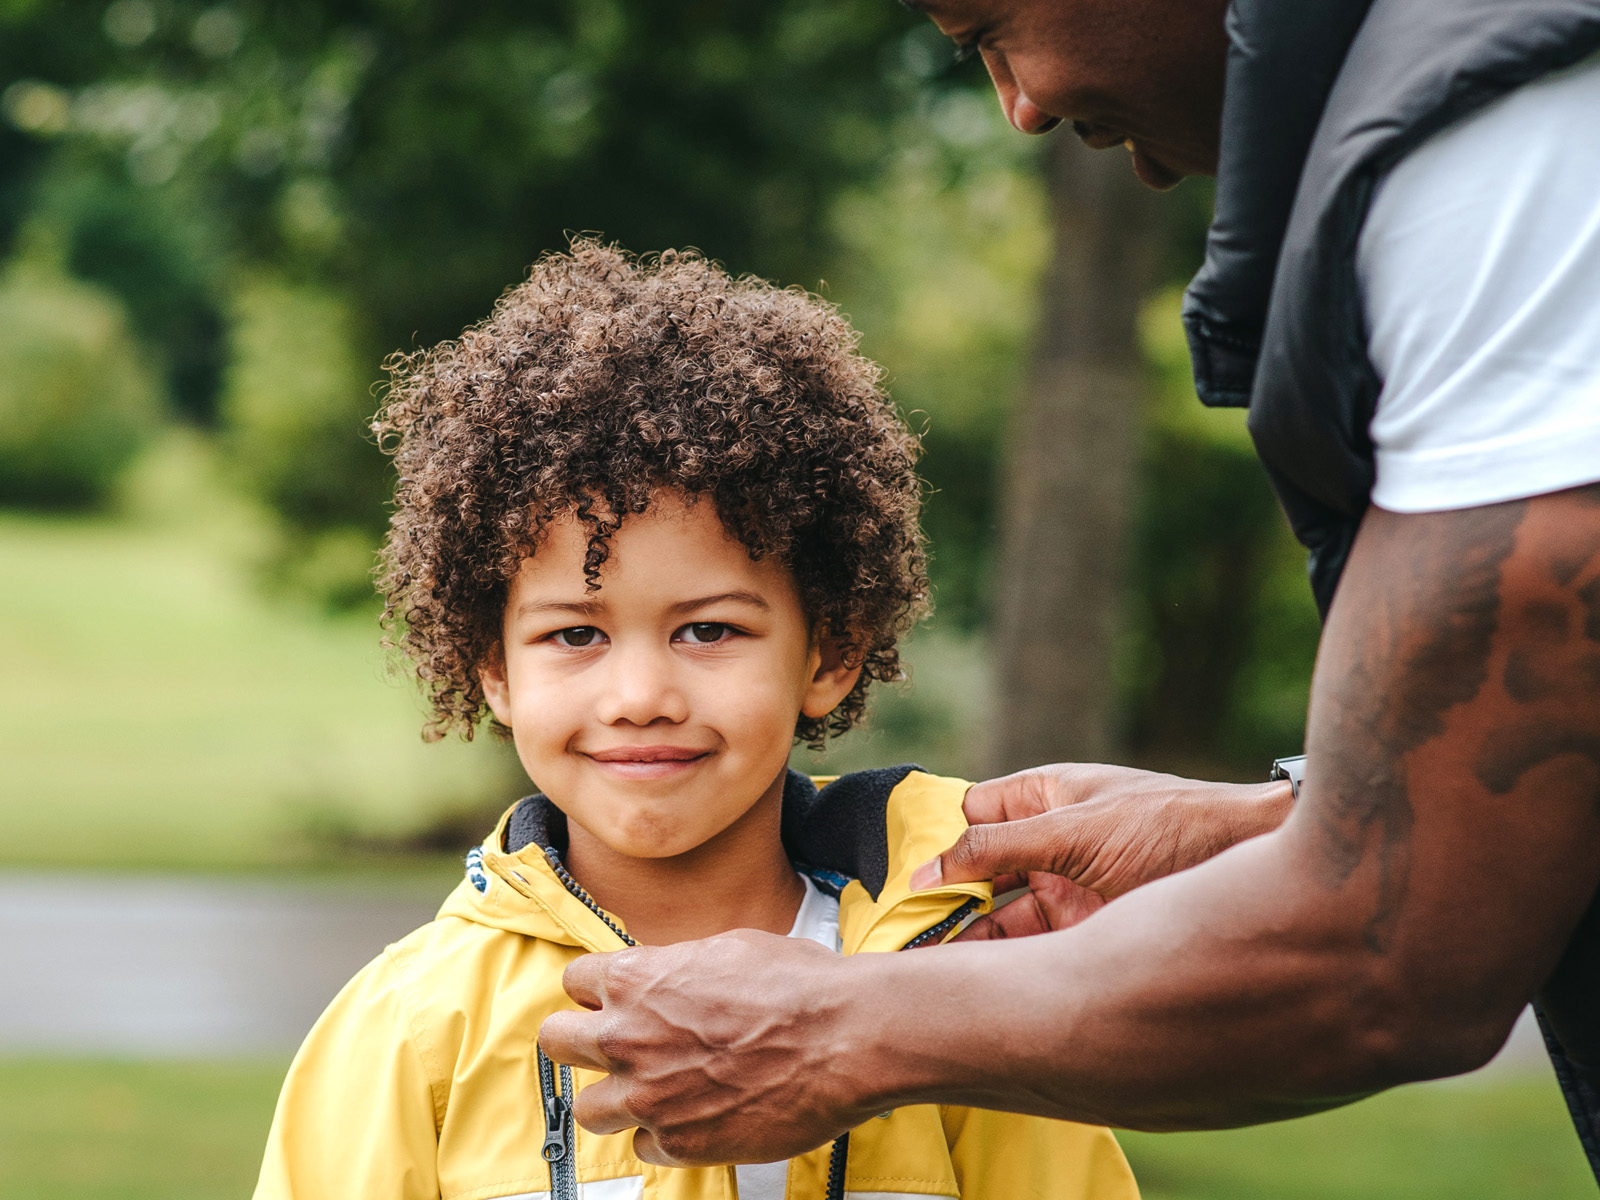 Young boy getting assistance from a parent zipping up his coat